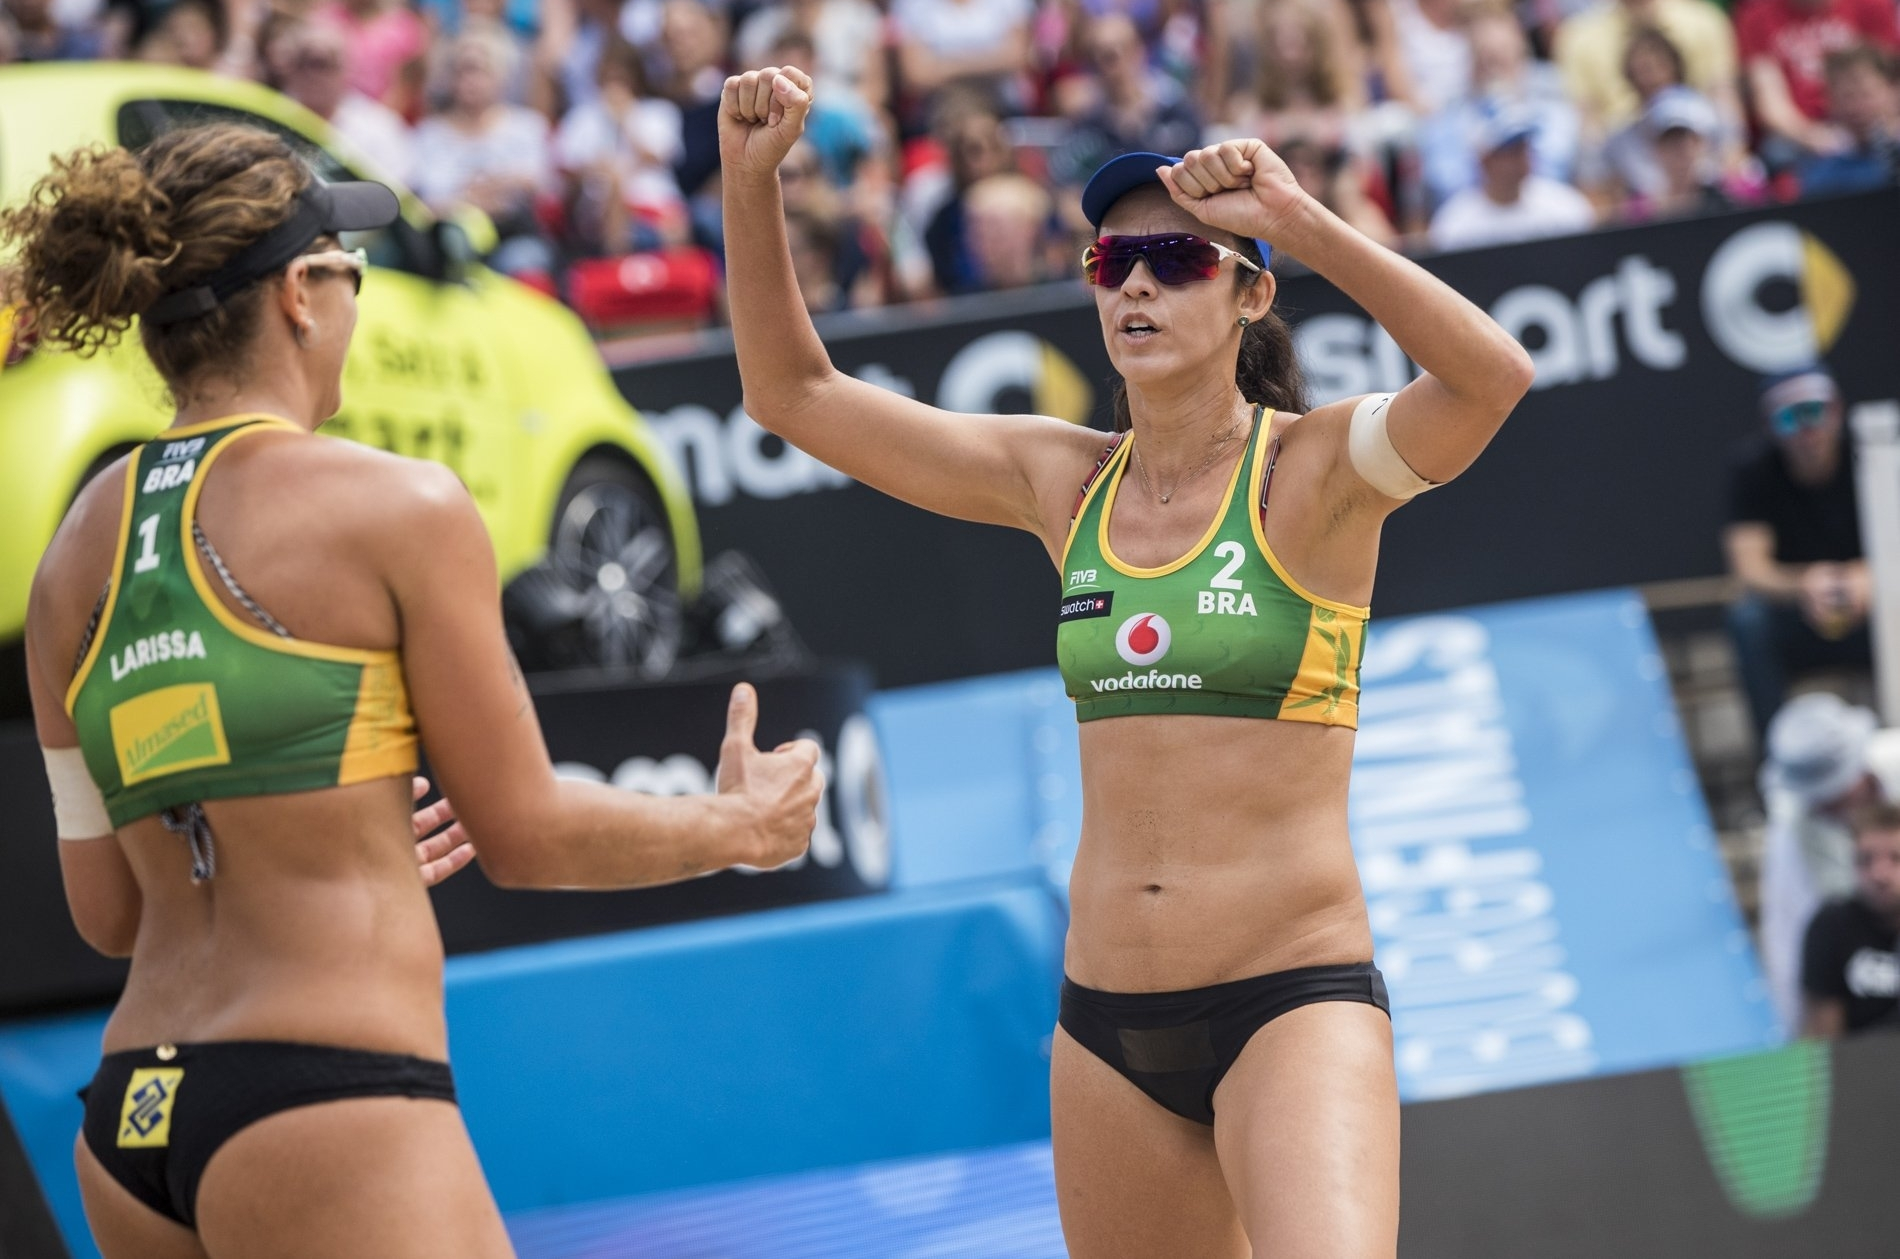 Larissa and Talita celebrate after taking the bronze medal